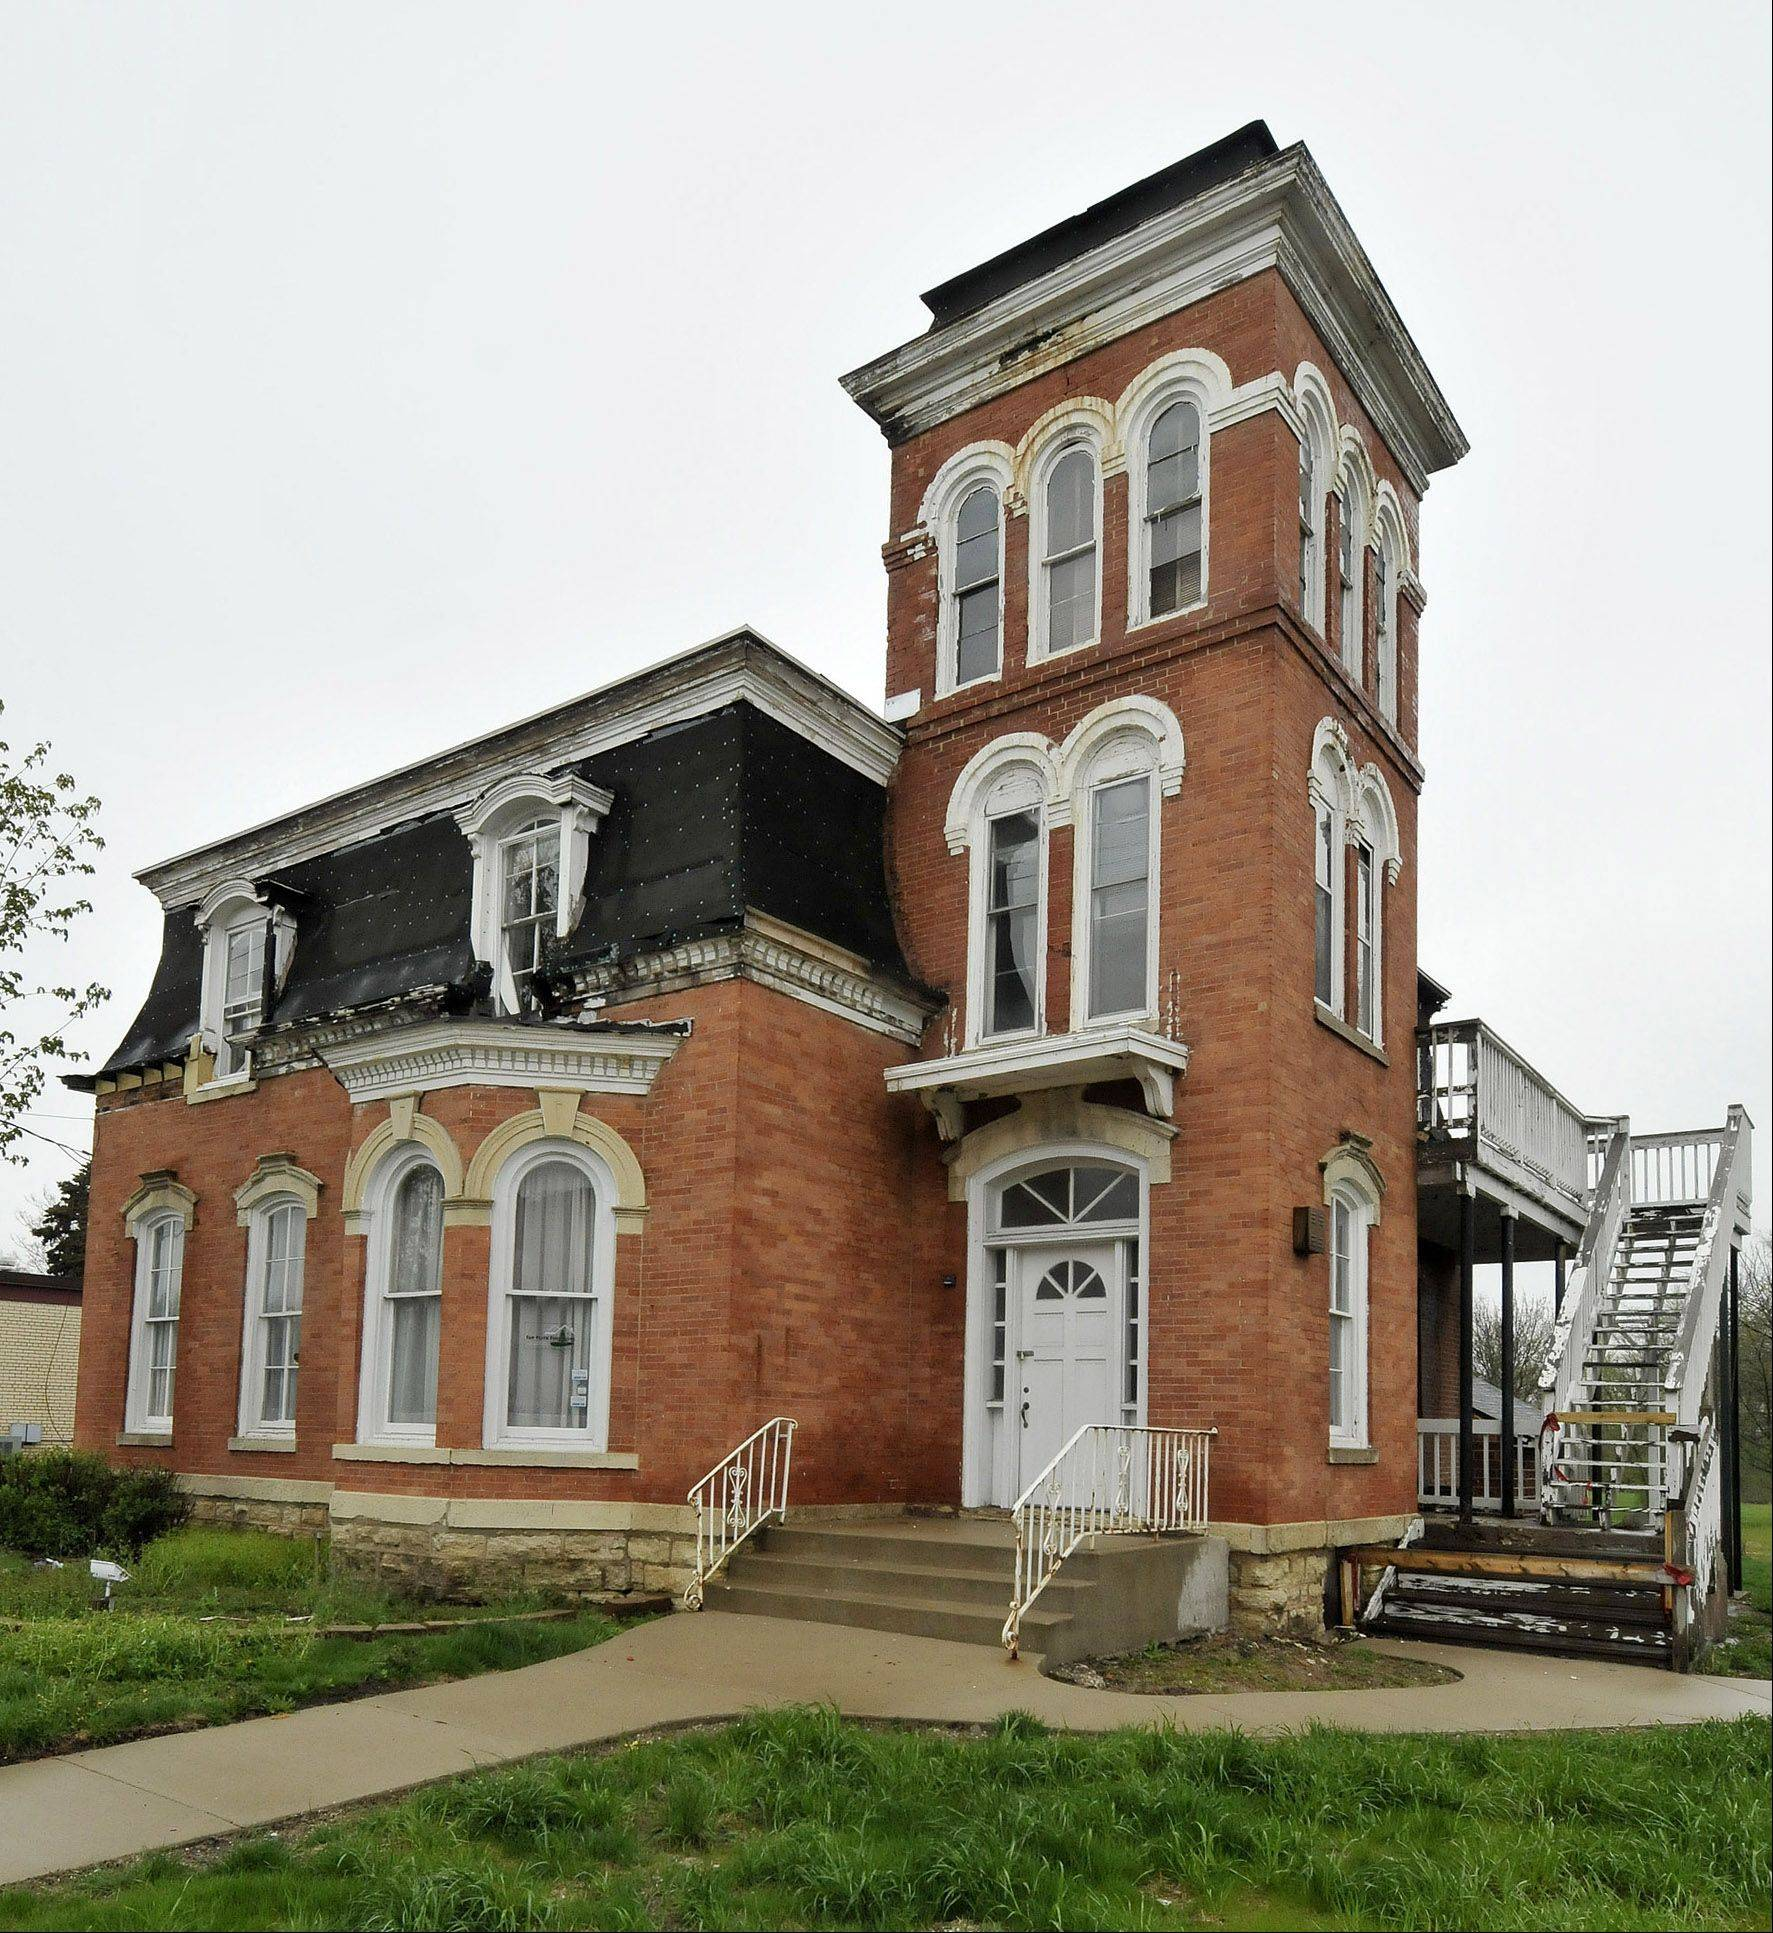 West Chicago officials tonight may approve a deal allowing a local group to repair the 144-year-old Wiant House, built by Joel Wiant, one of DuPage County's first white settlers and a prominent businessman.